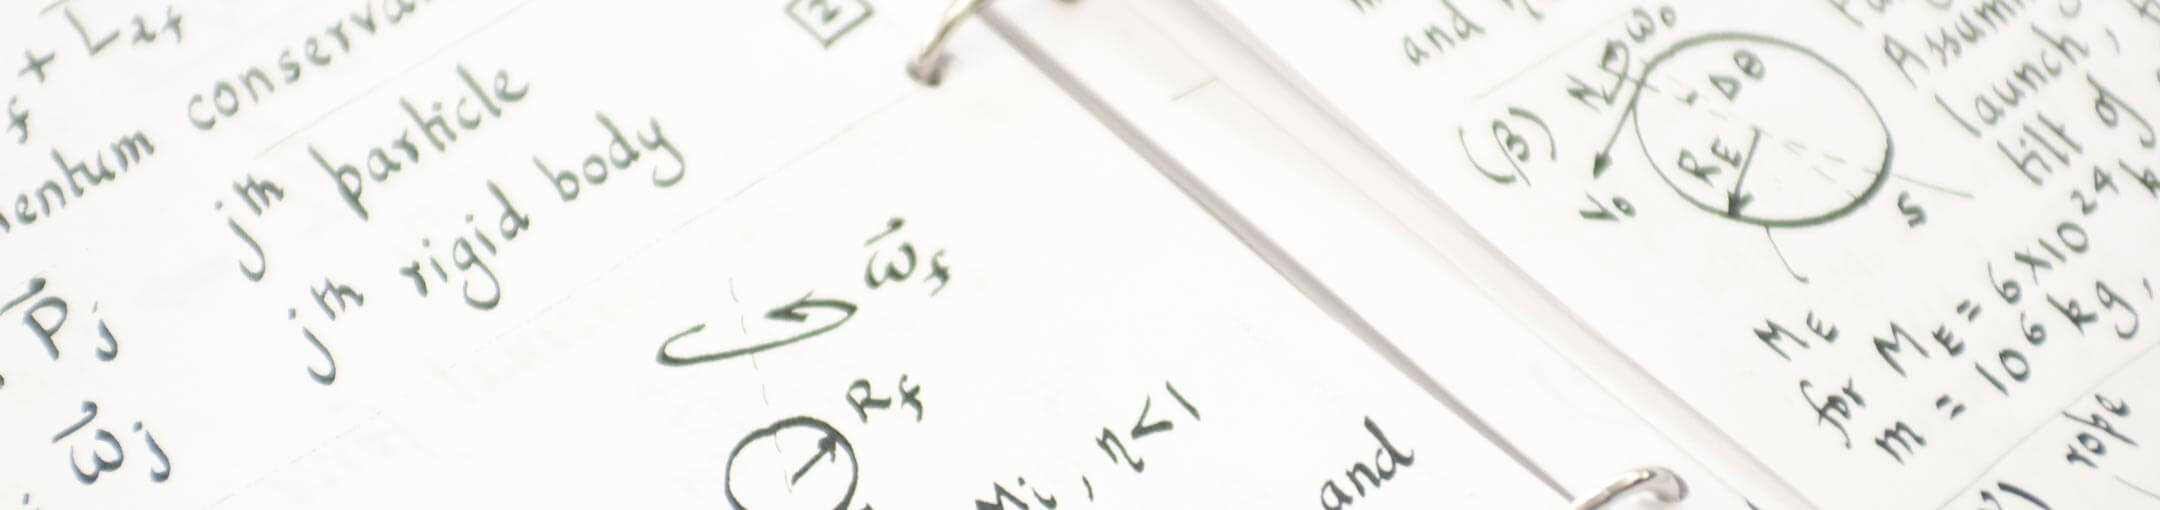 Close up of a 3-ring binder opened to written notes and formulas.